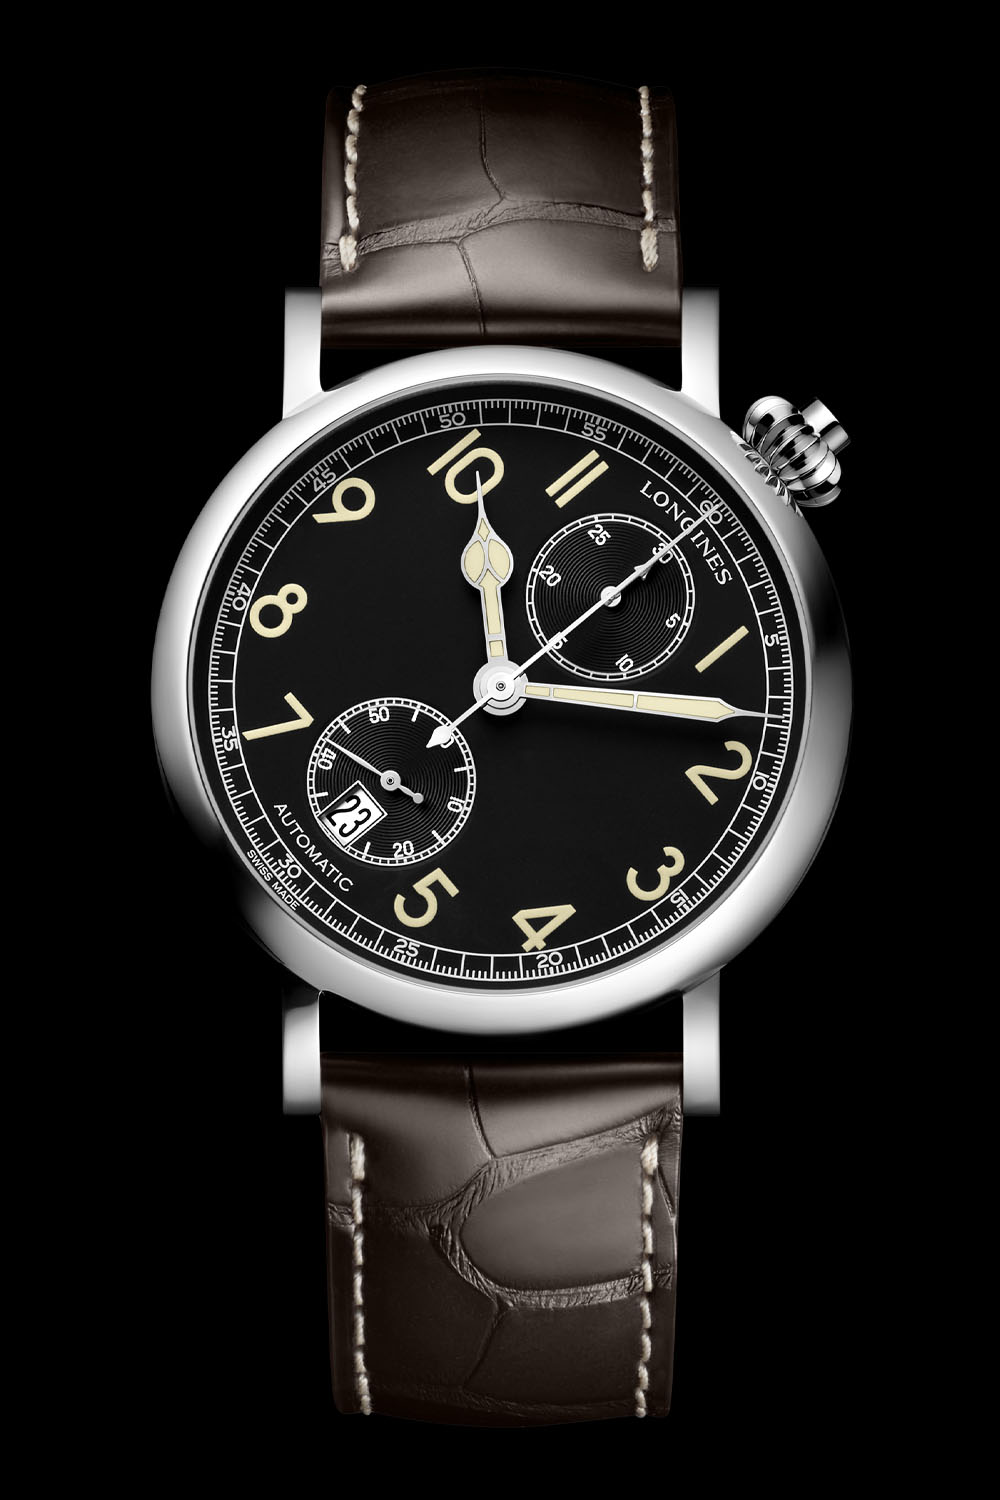 The Longines Avigation Watch Type A-7 1935 - 2020 model